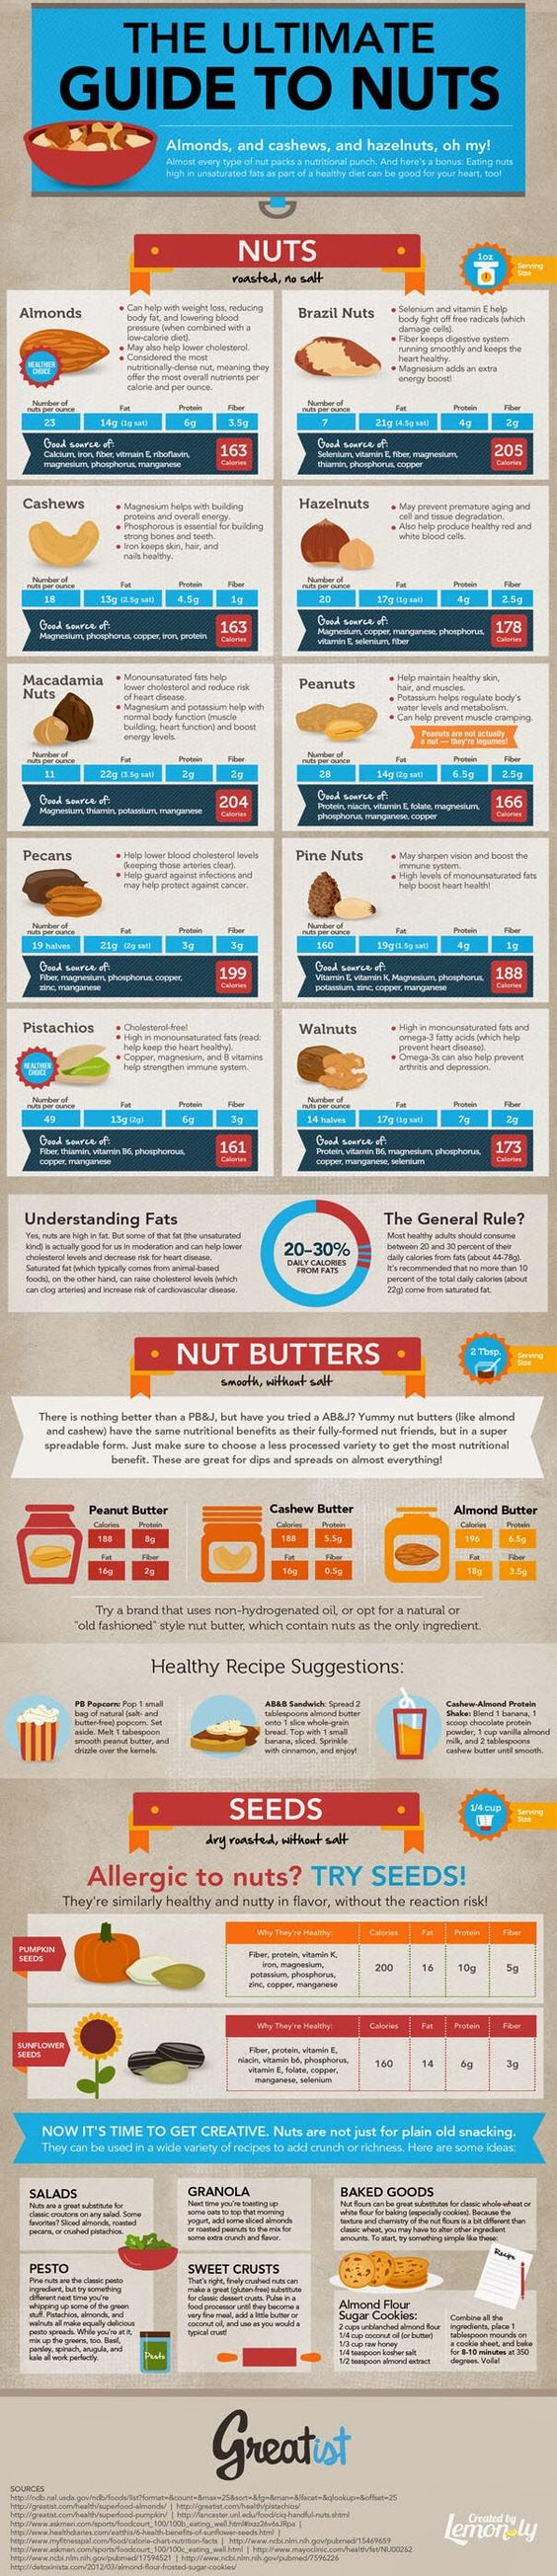 Health Benefits of Nuts - Health Tips In Pics